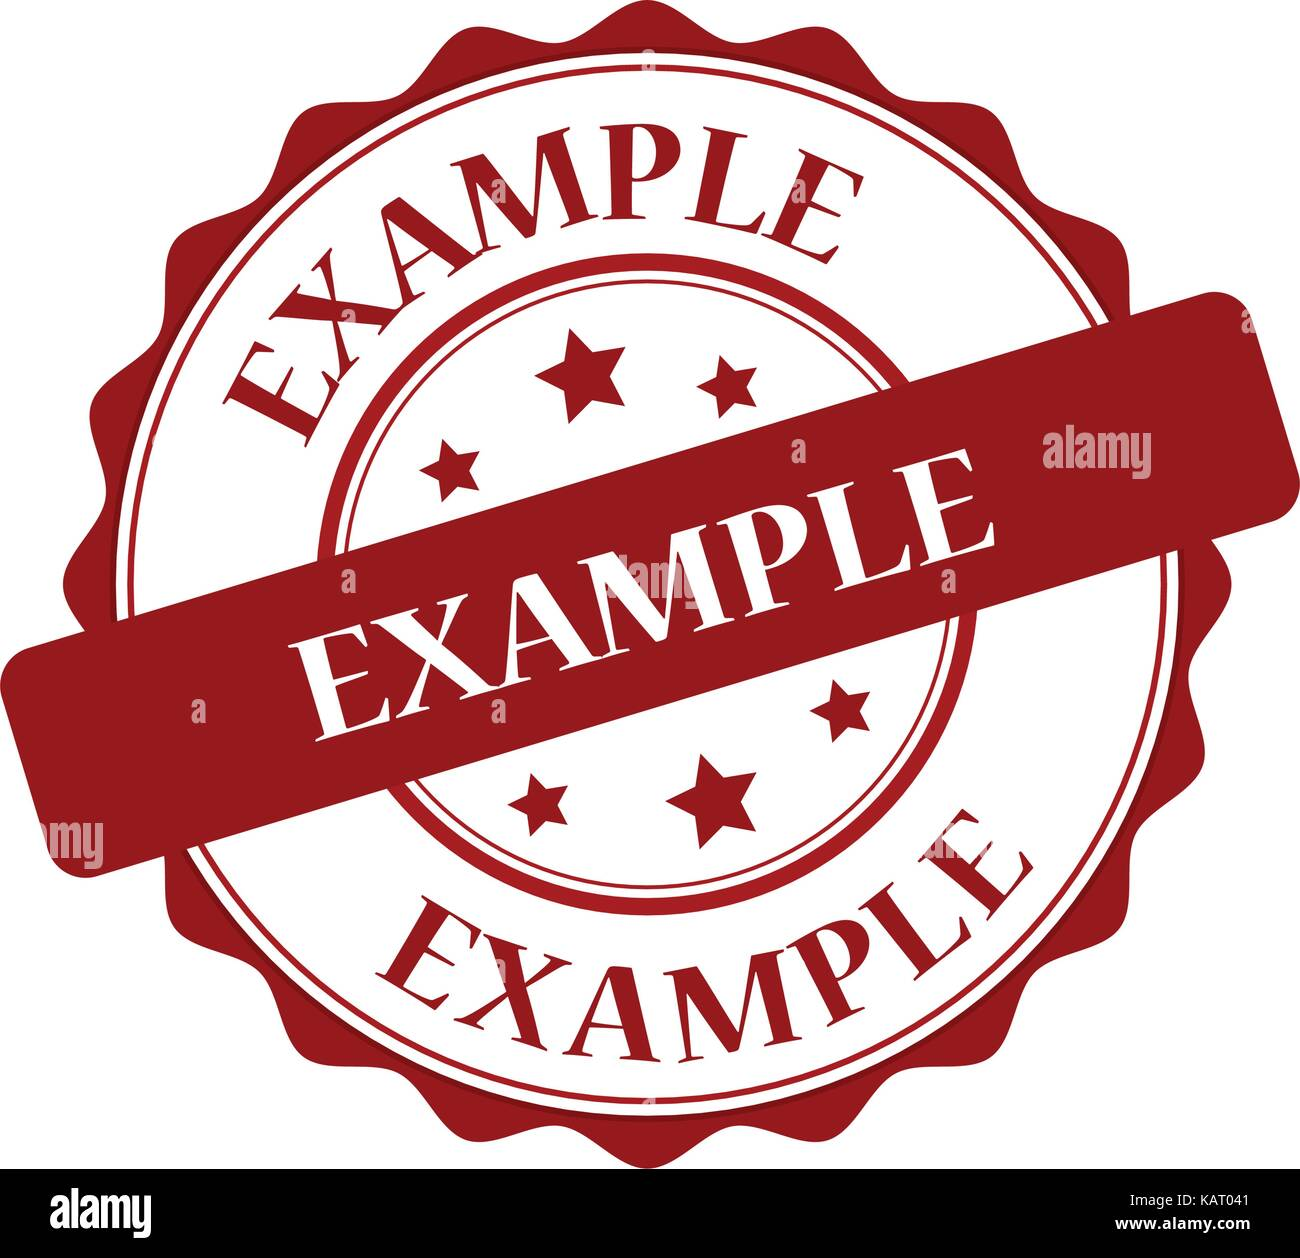 example stock vector images alamy